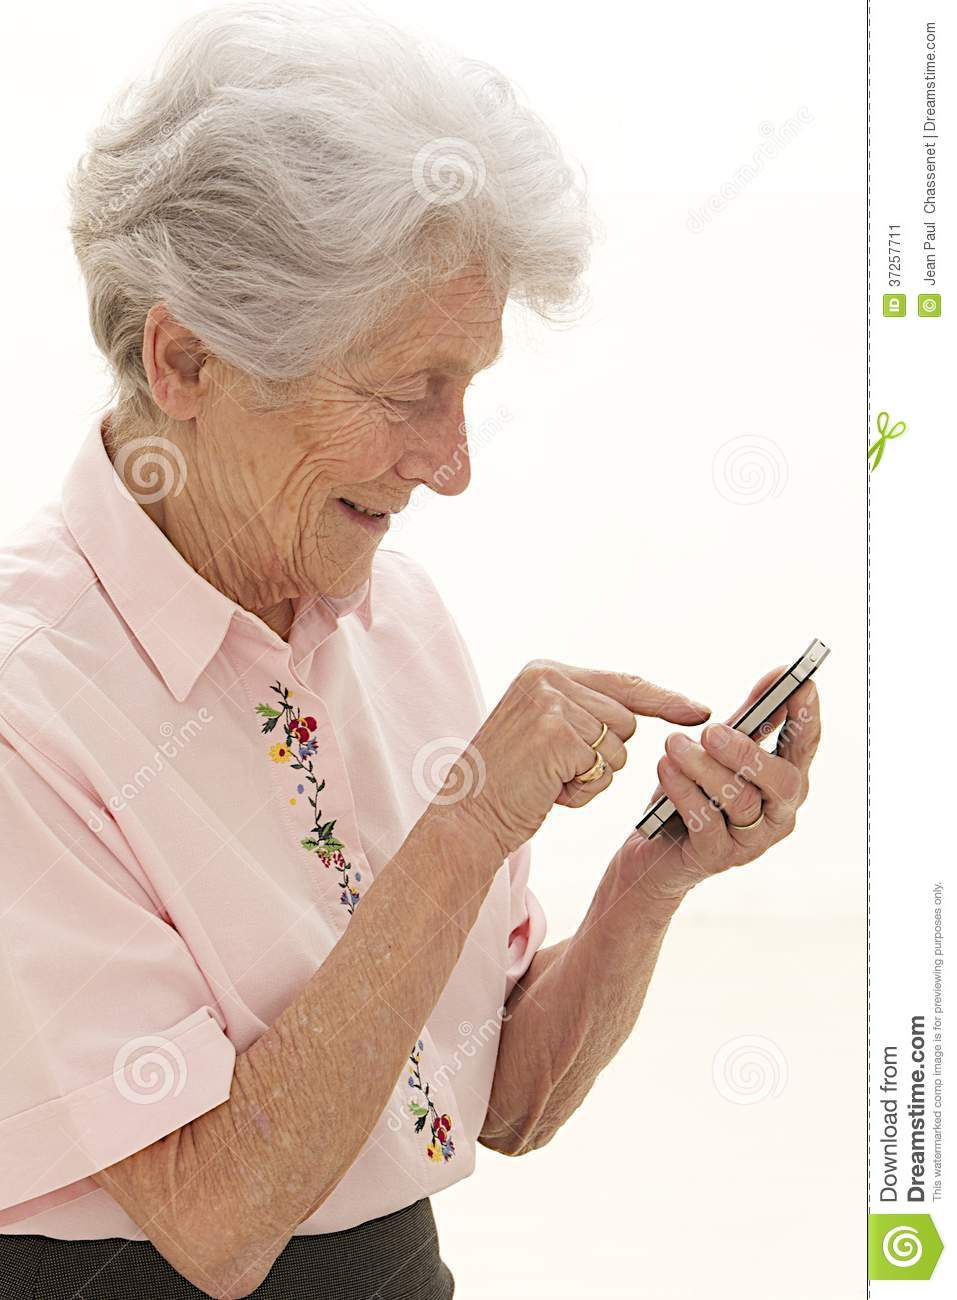 Senior Lady Texting On Mobile Phone Stock Image - Image ... Old Lady On Cell Phone Clip Art